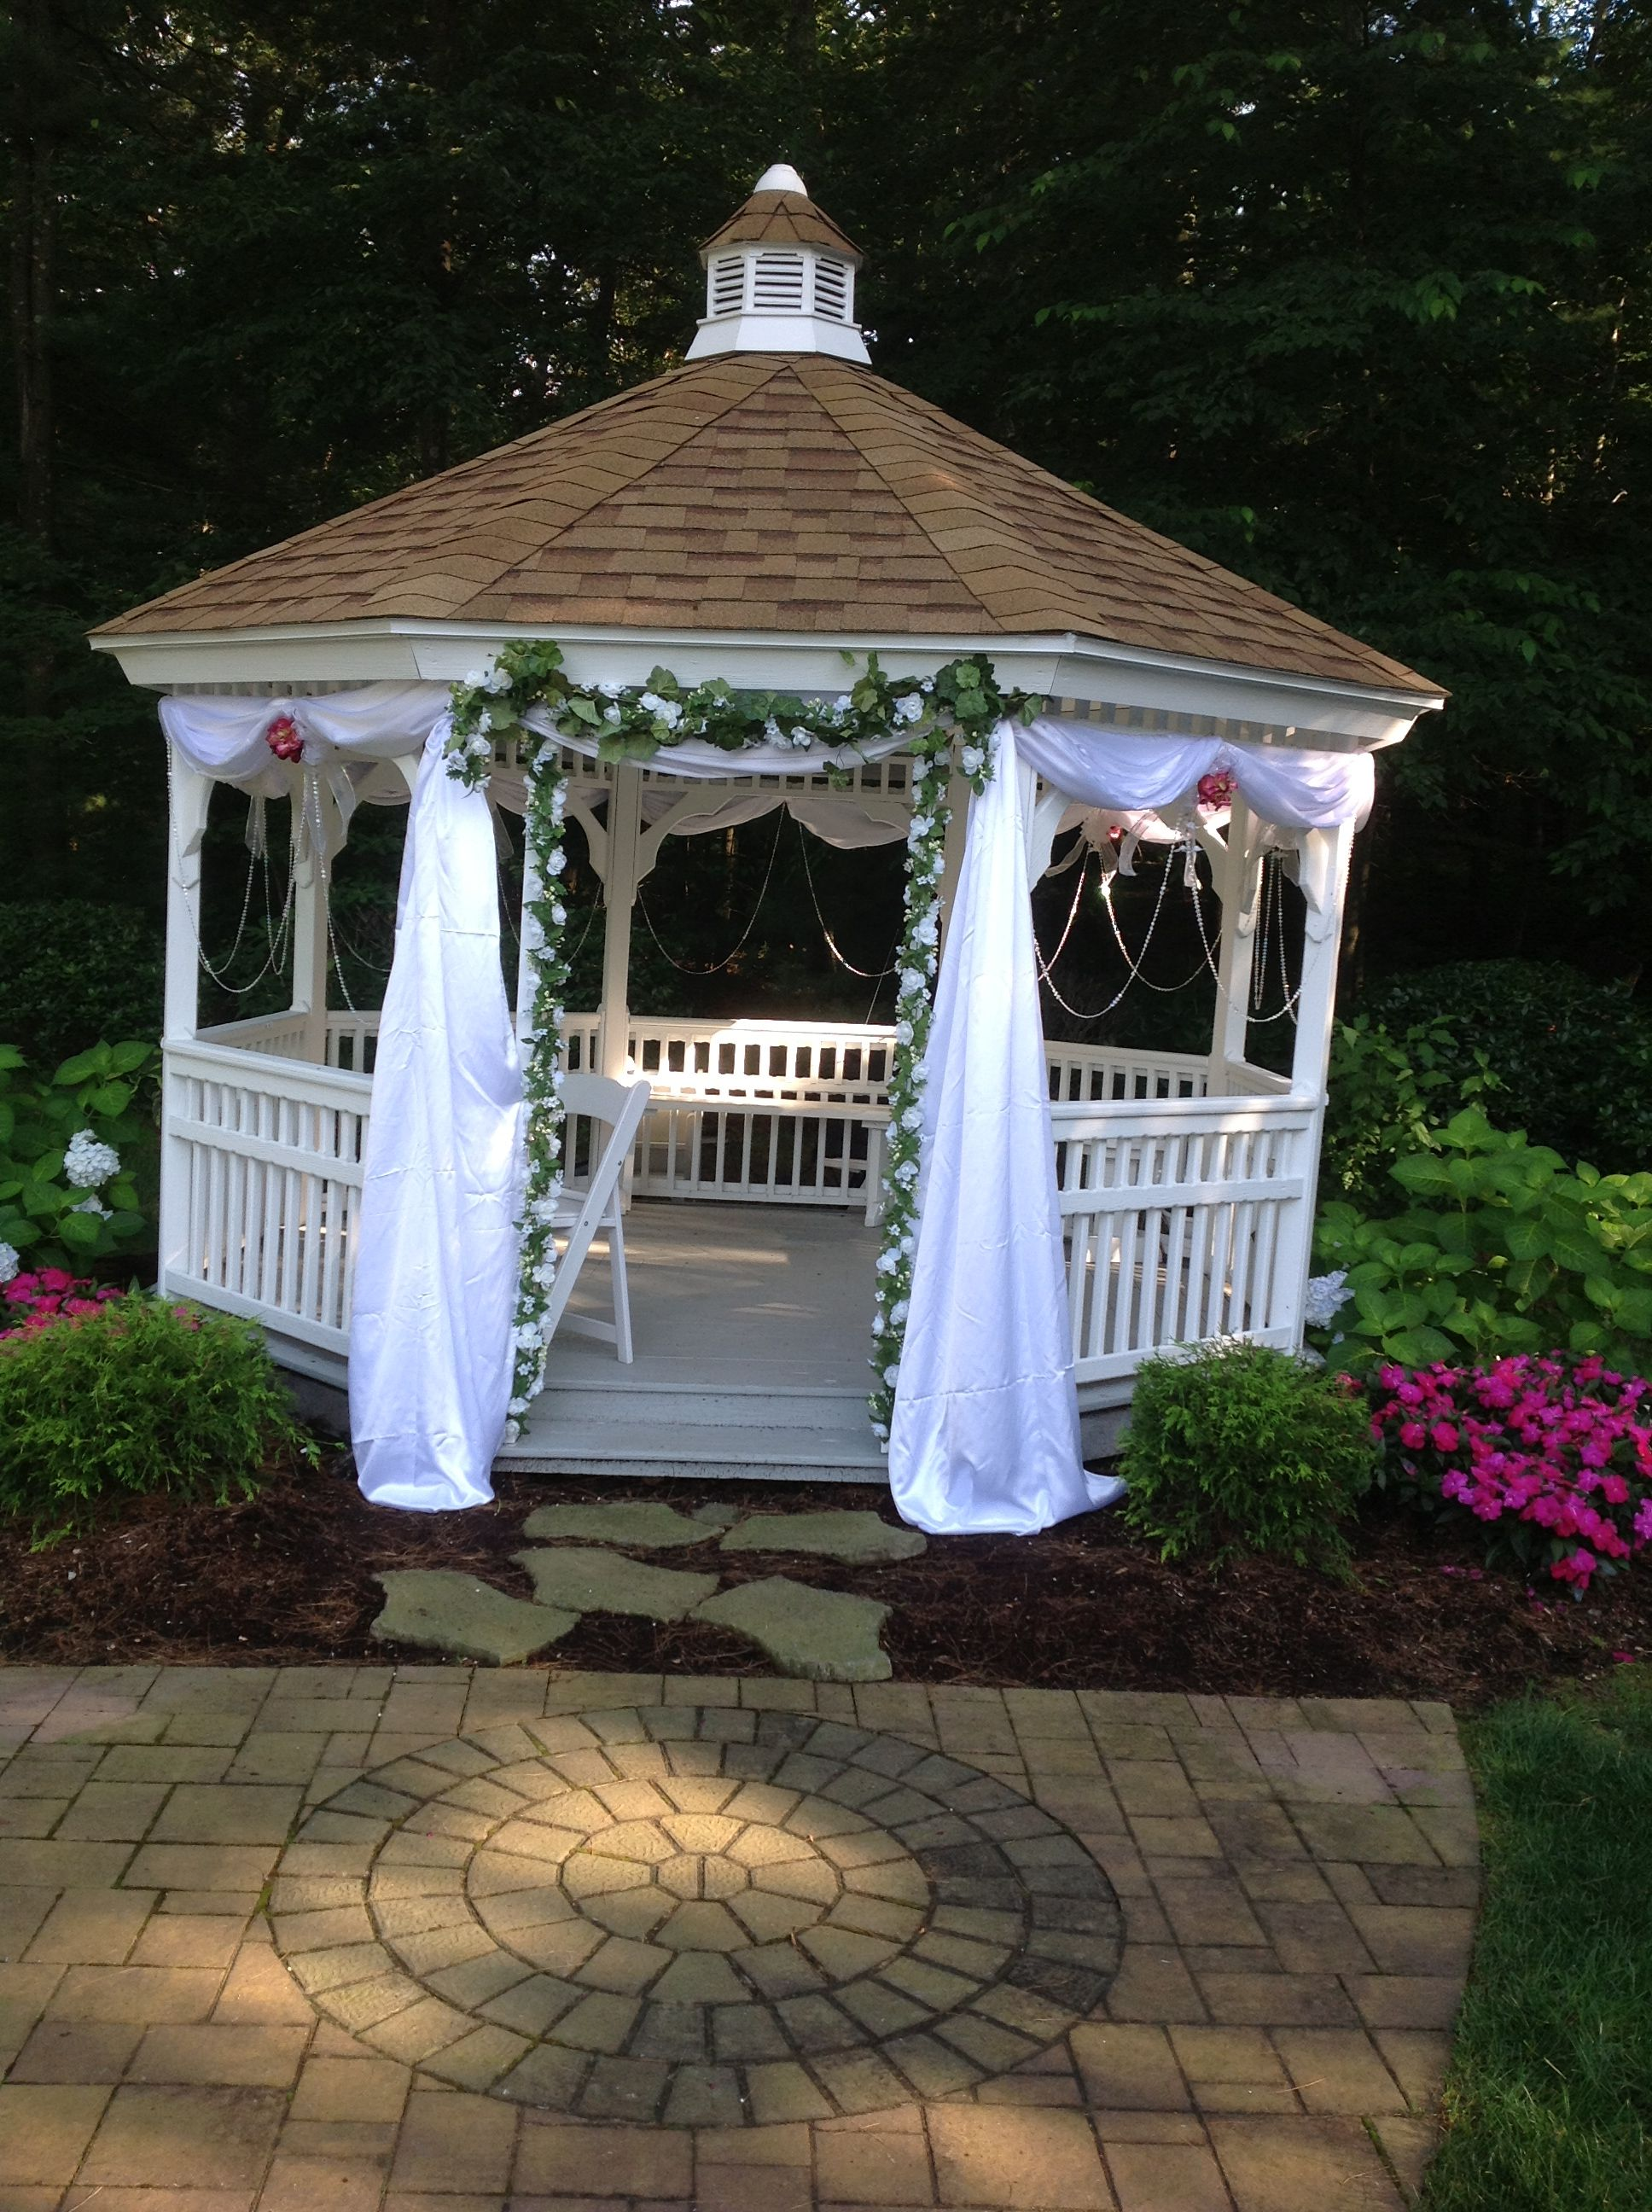 Wedding gazebo With string lights for night time  Our